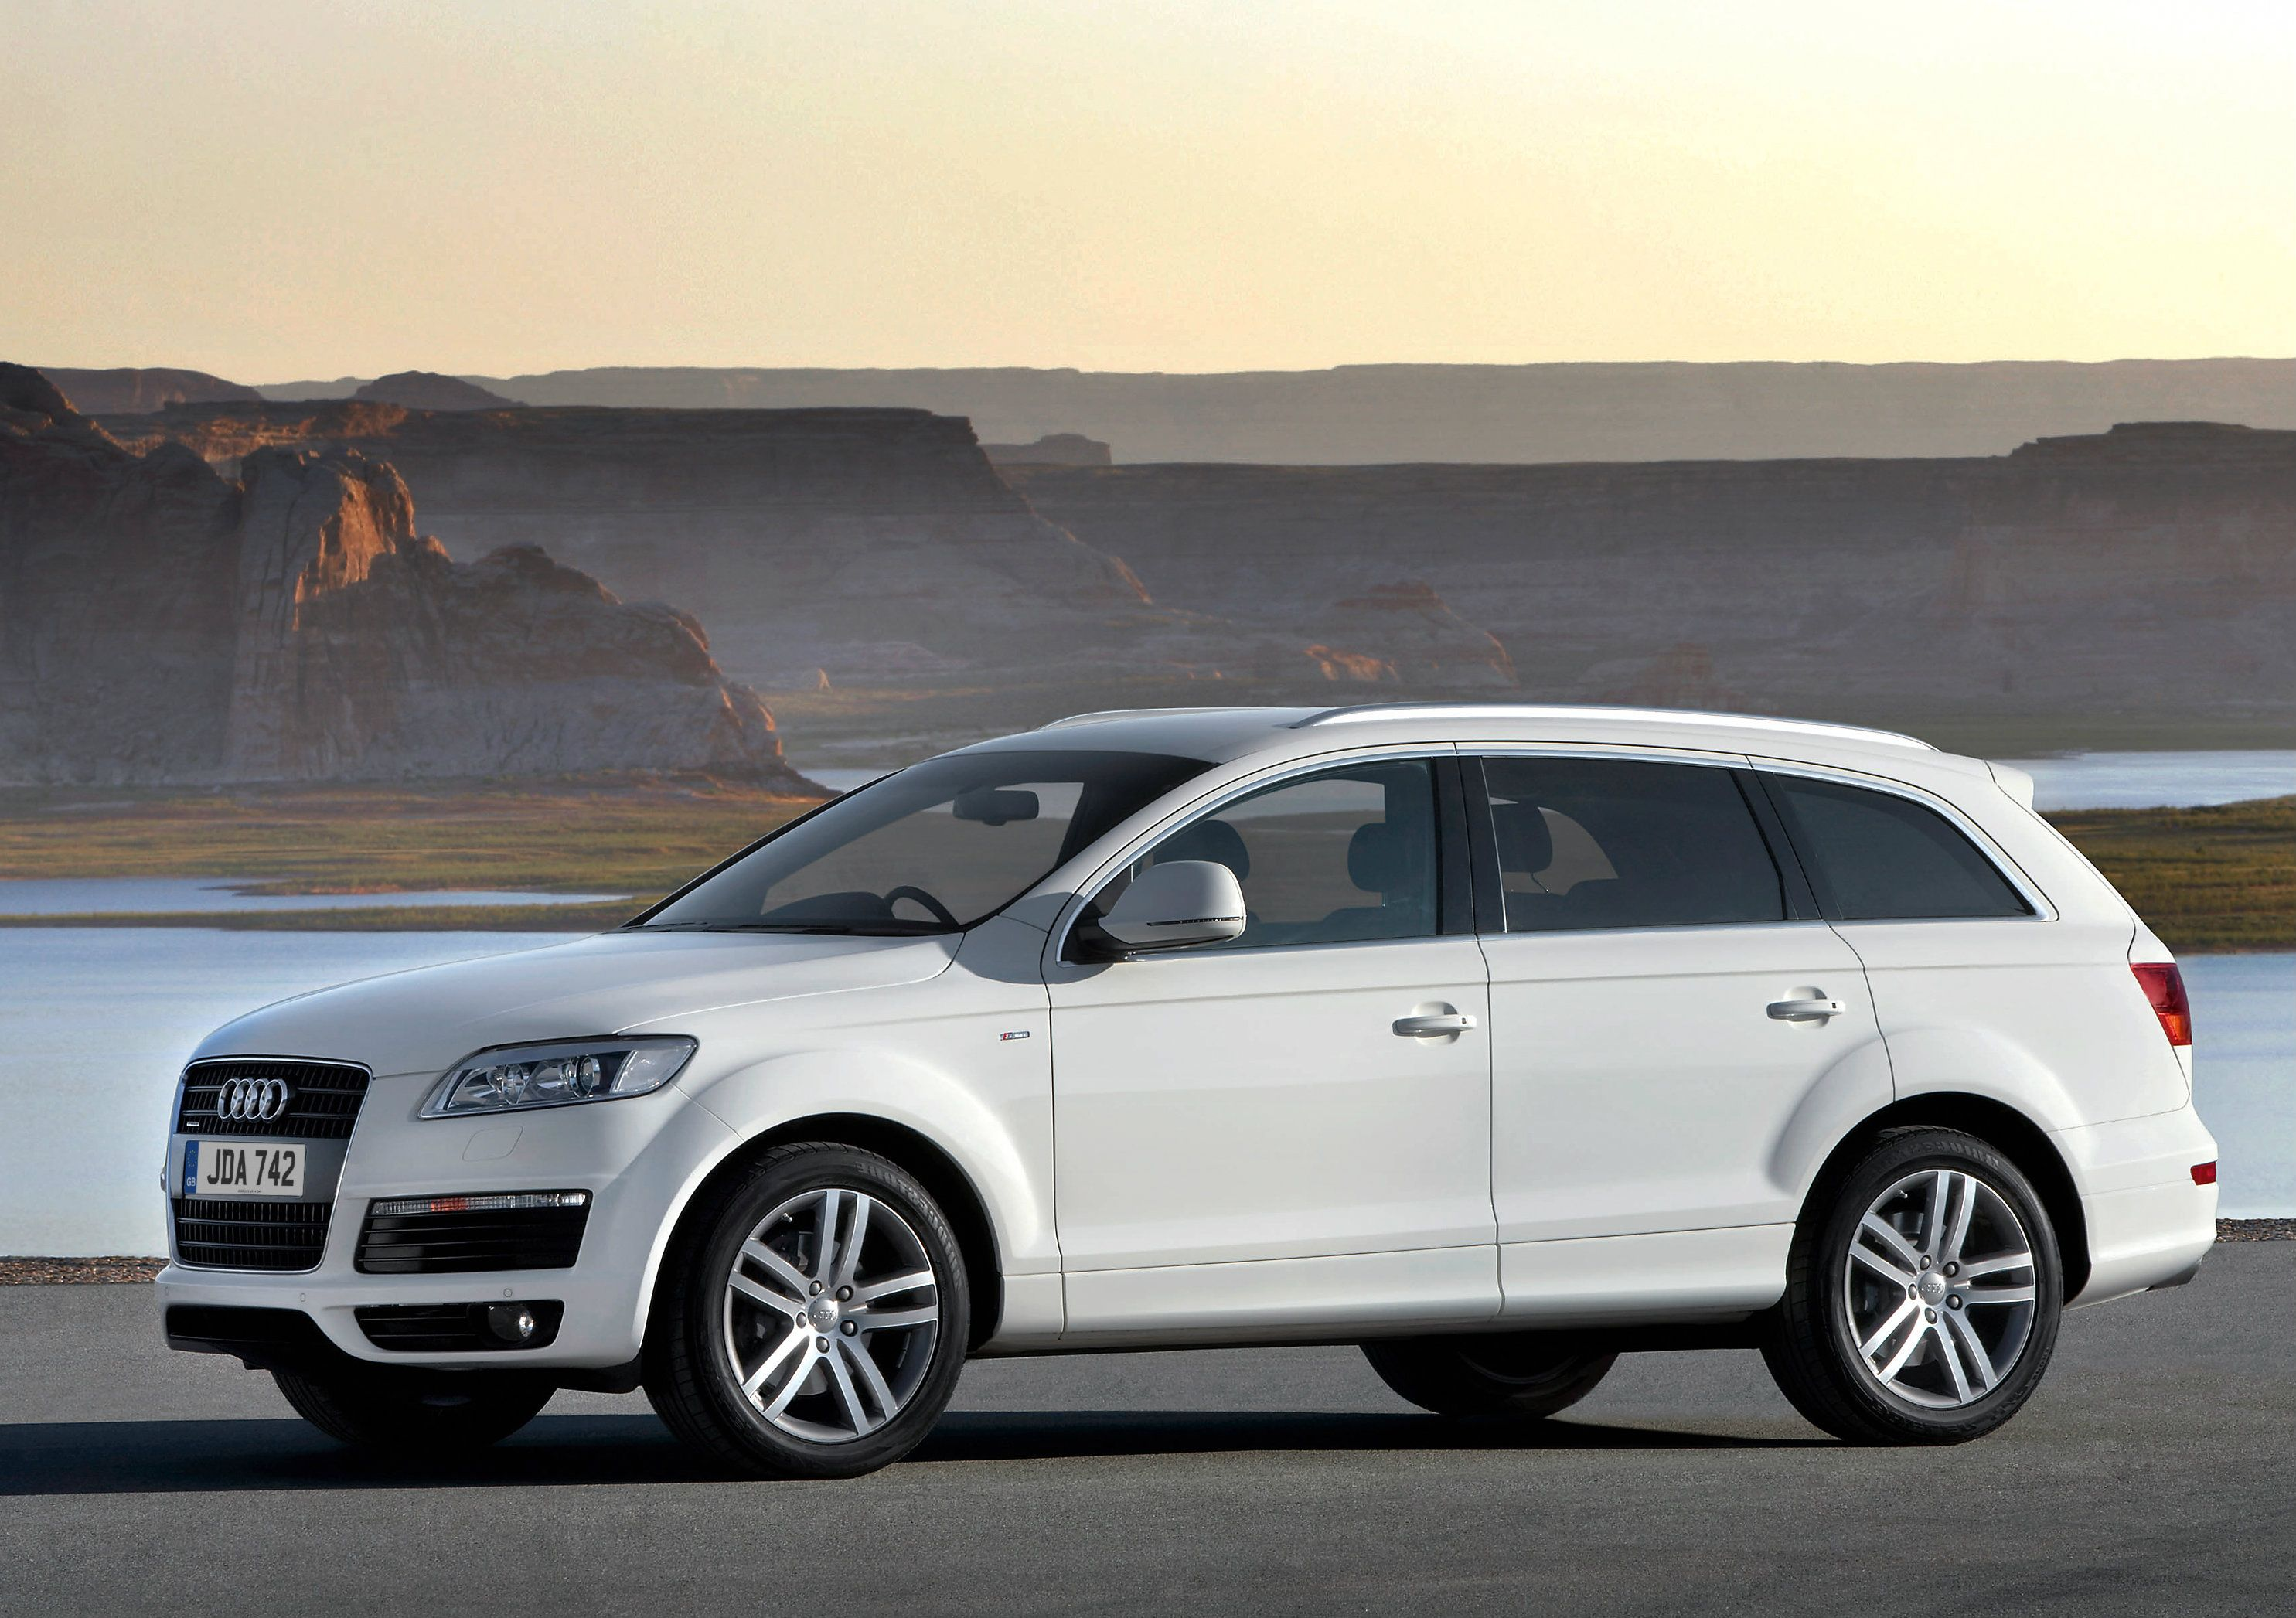 Cars for sale near me under 15000 luxury best pact suvs